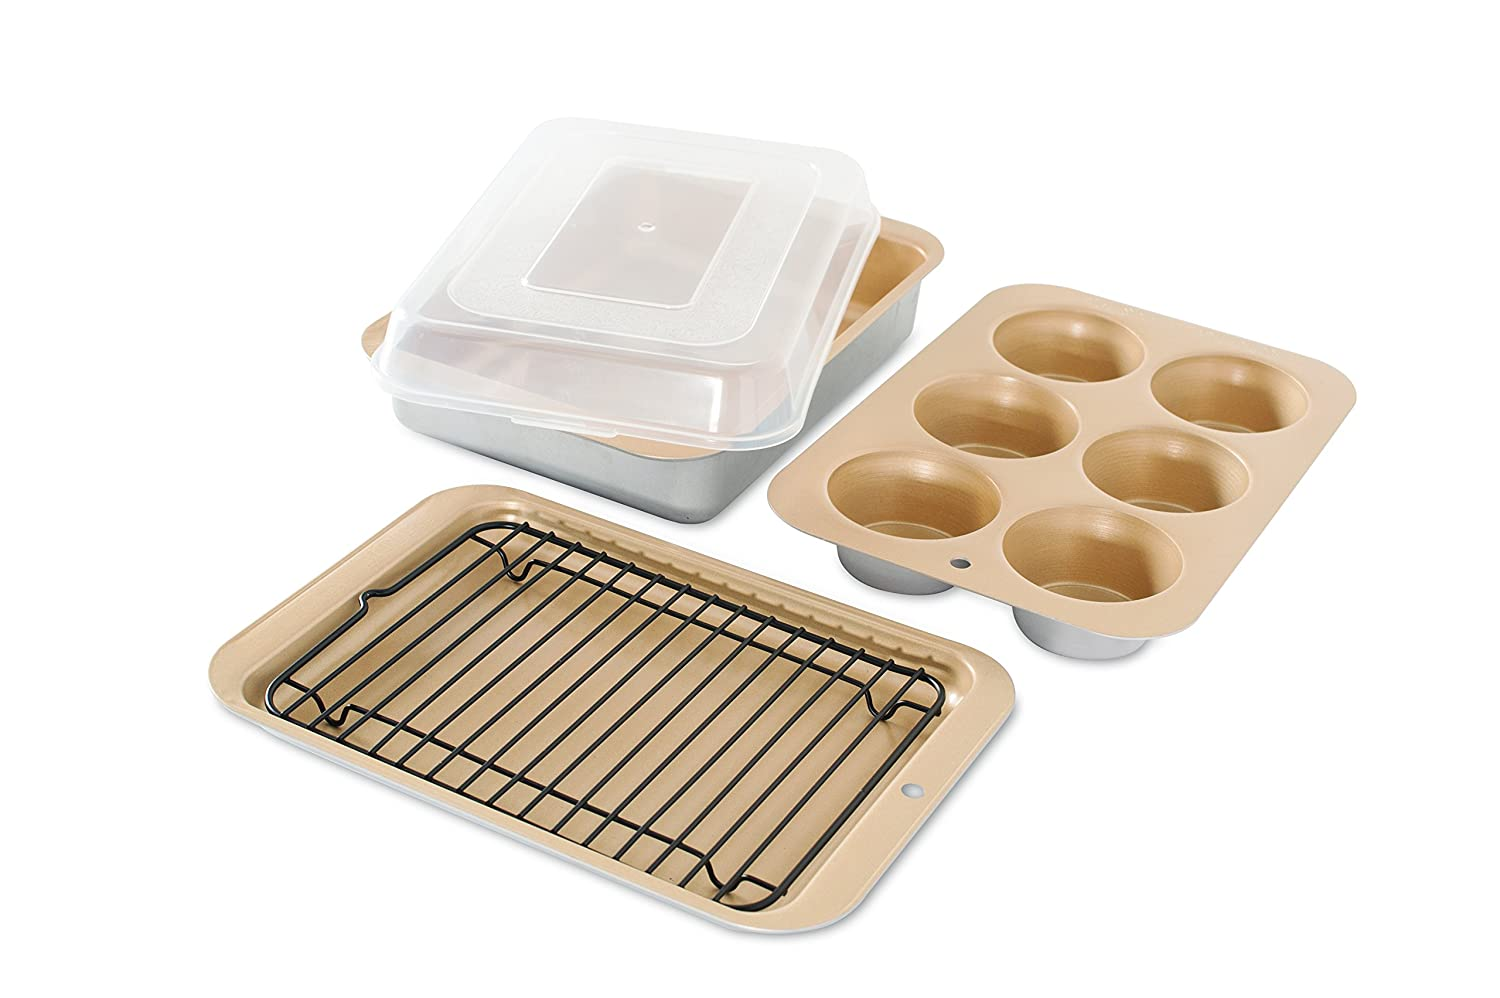 Nordic Ware Toaster Oven 5-Piece Set 43215